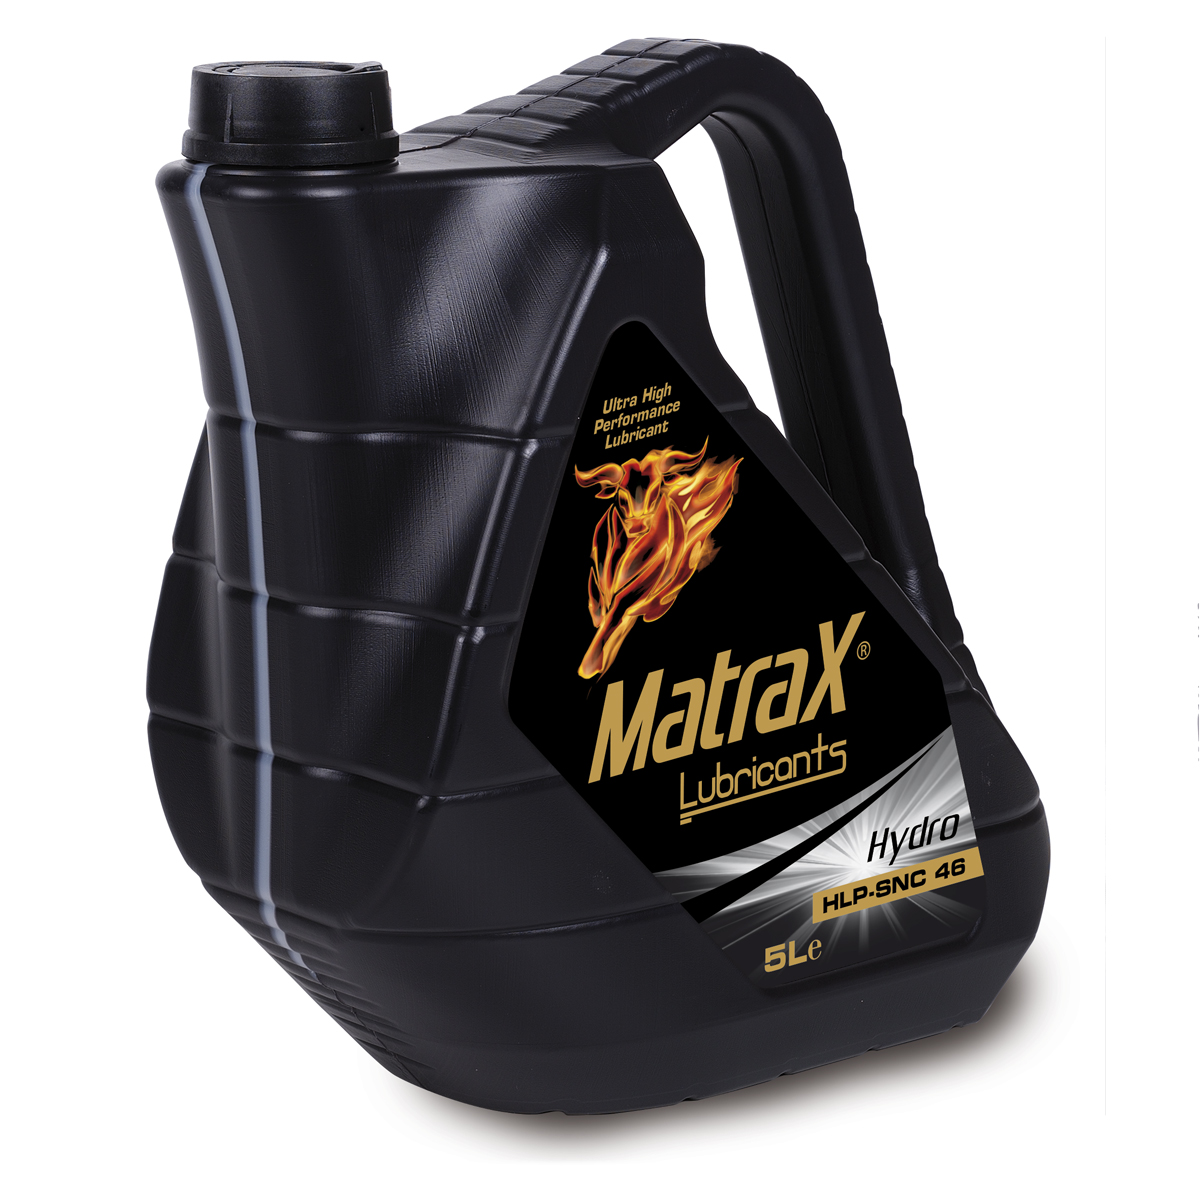 MatraX Hydro HLP Plus 46